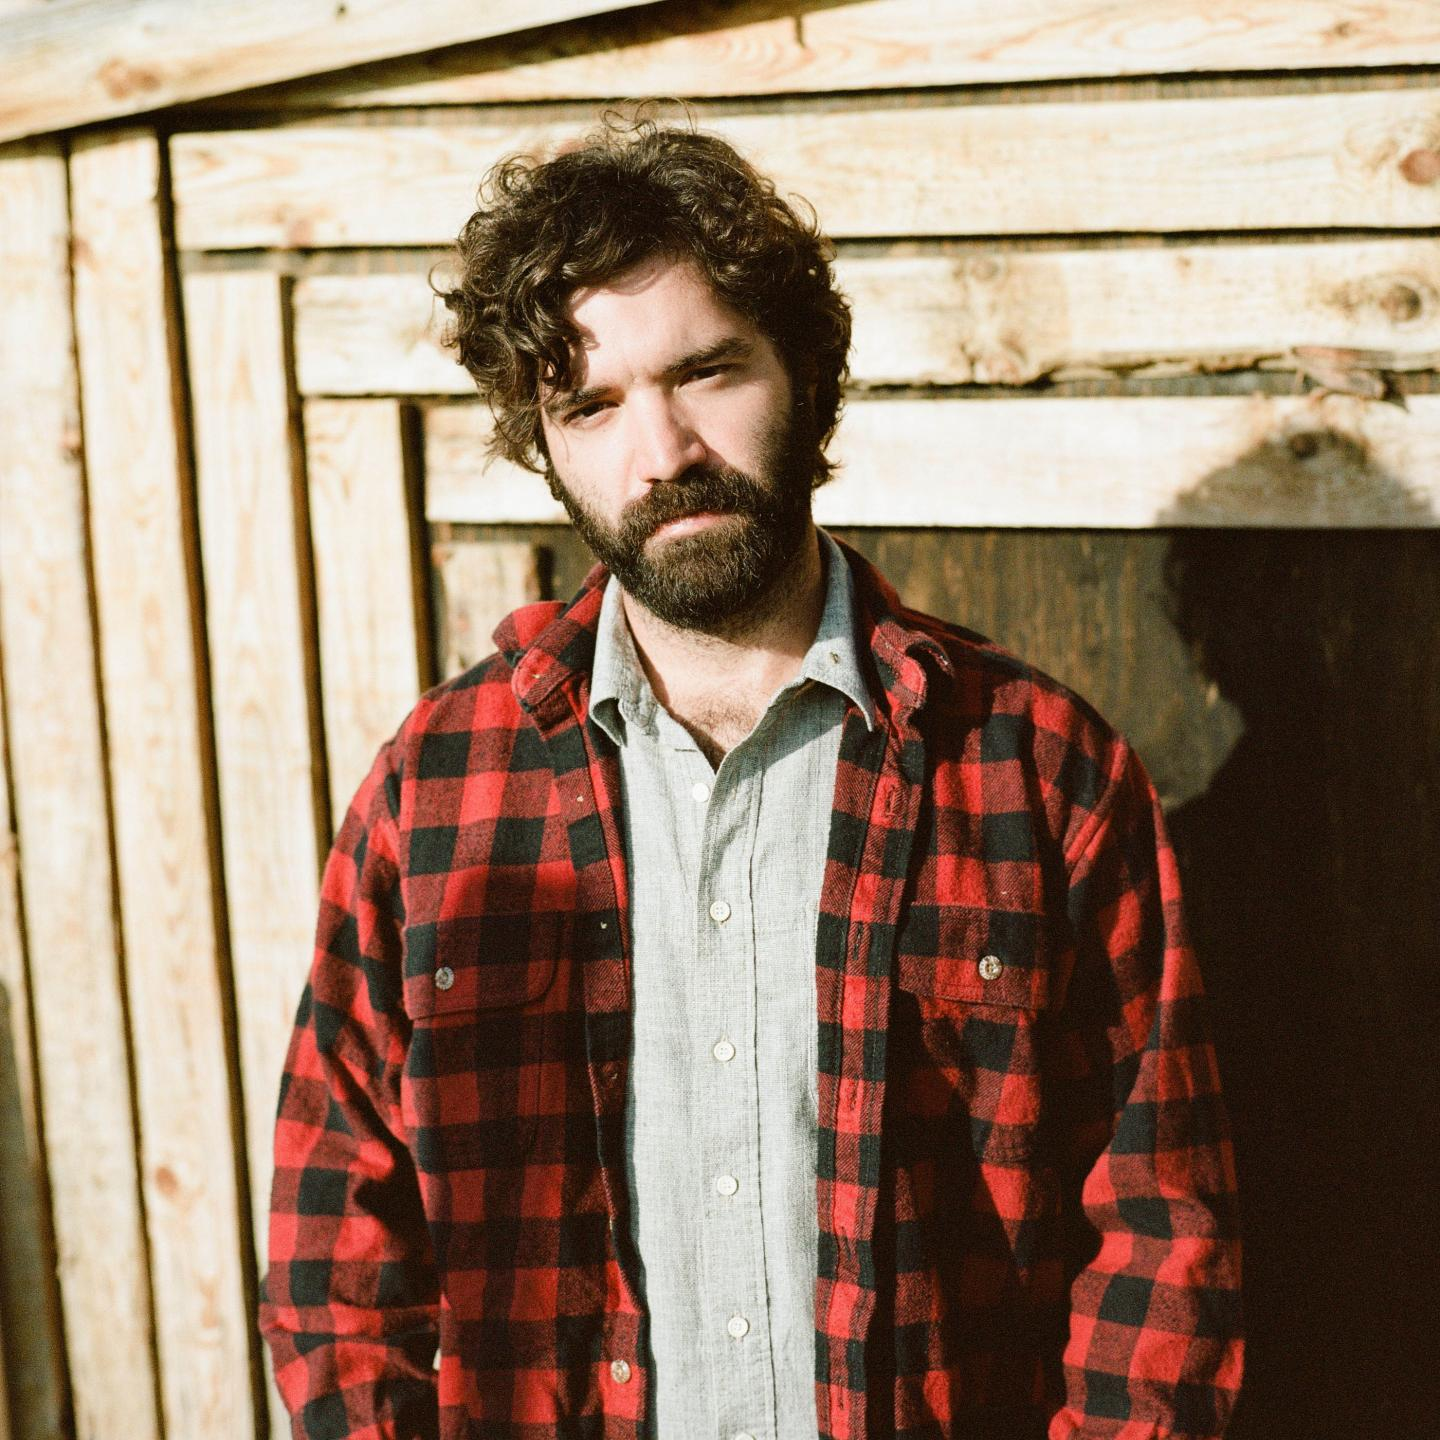 Andrew Duhon wearing a grey polo under a plaid button down in front of a wooden structure